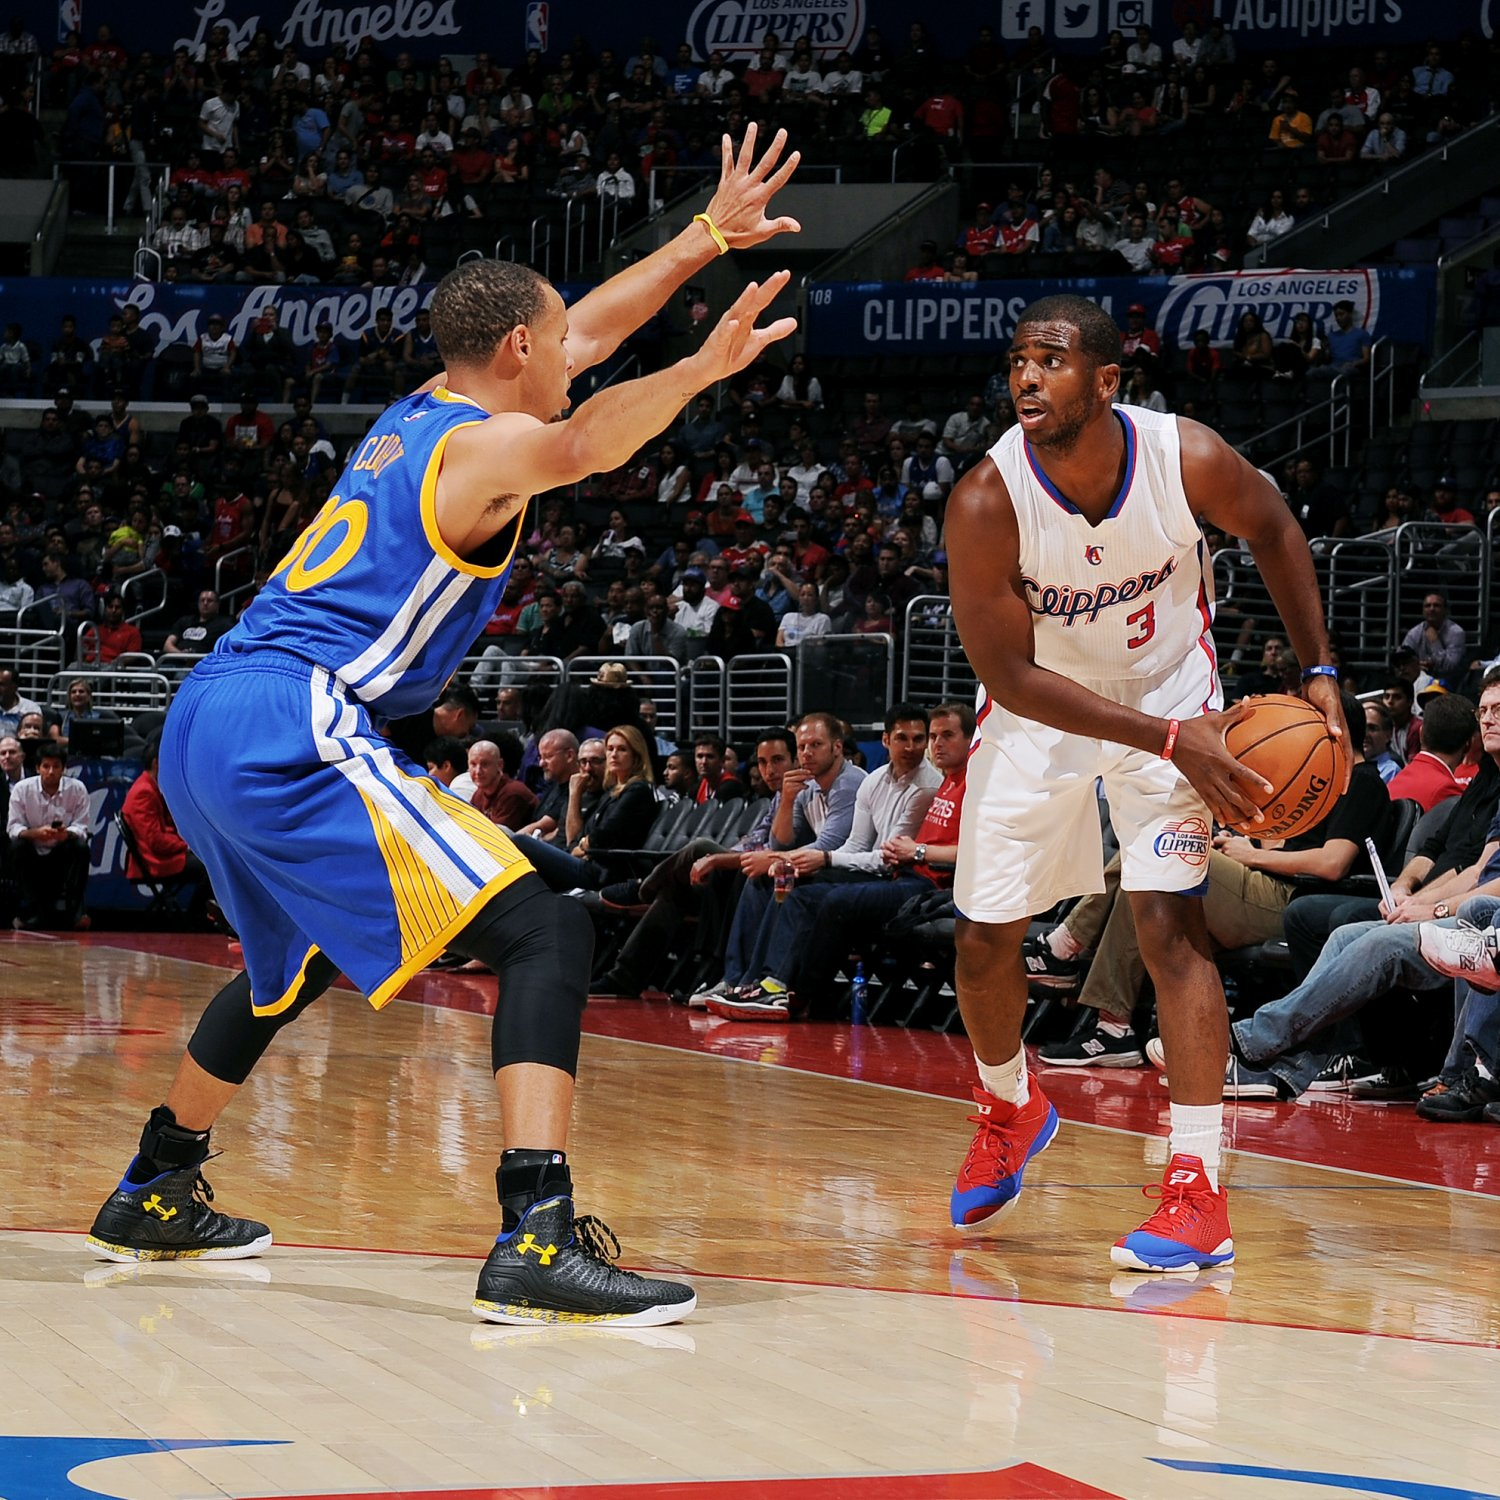 Warriors Vs. Clippers: Live Score And Highlights From 2014